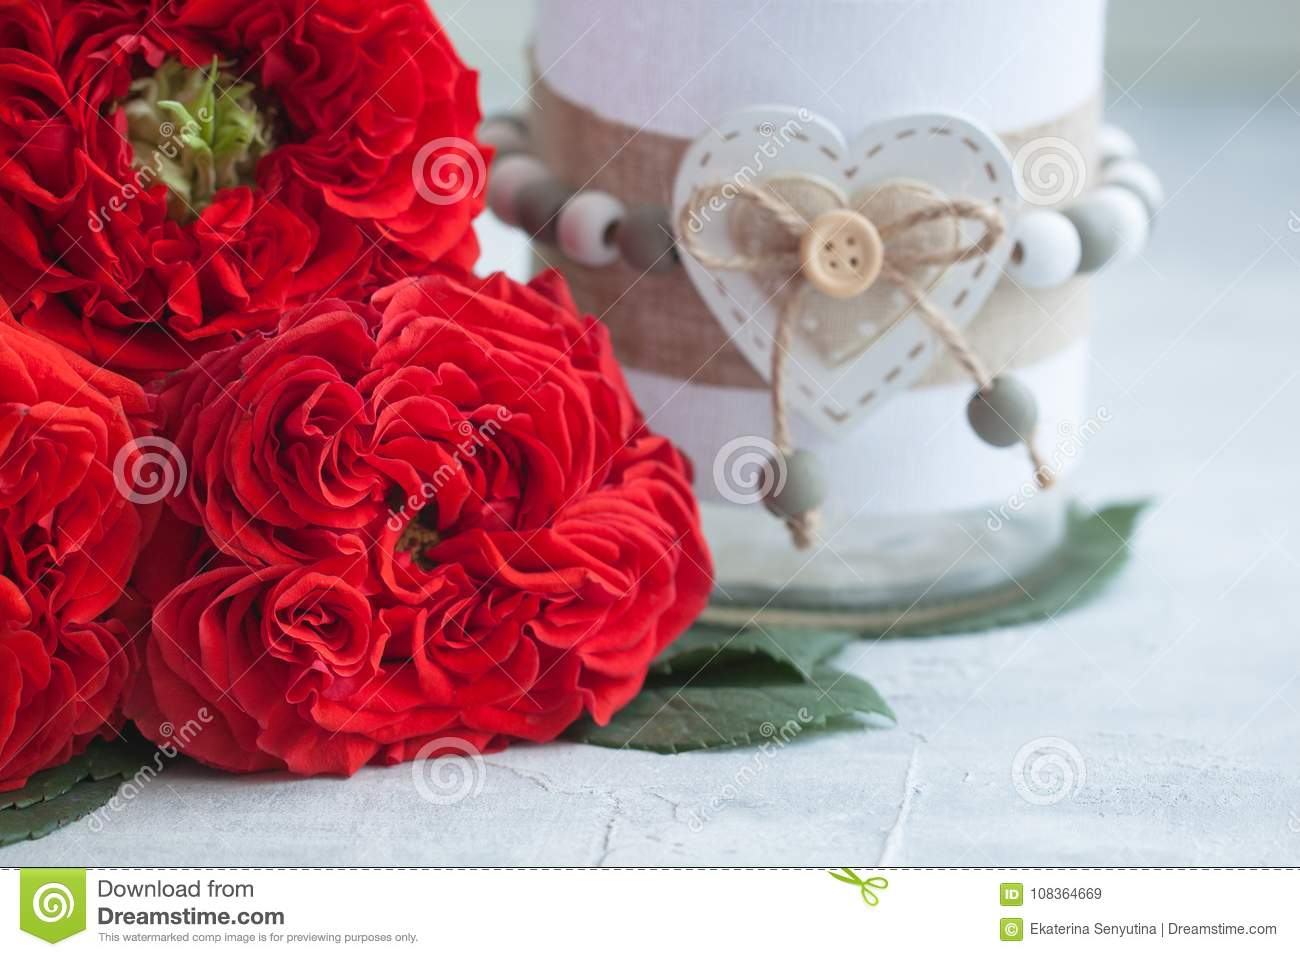 Vintage Fresh Red Garden Roses With A Vase. Valentine`s Or Wedding`s ...